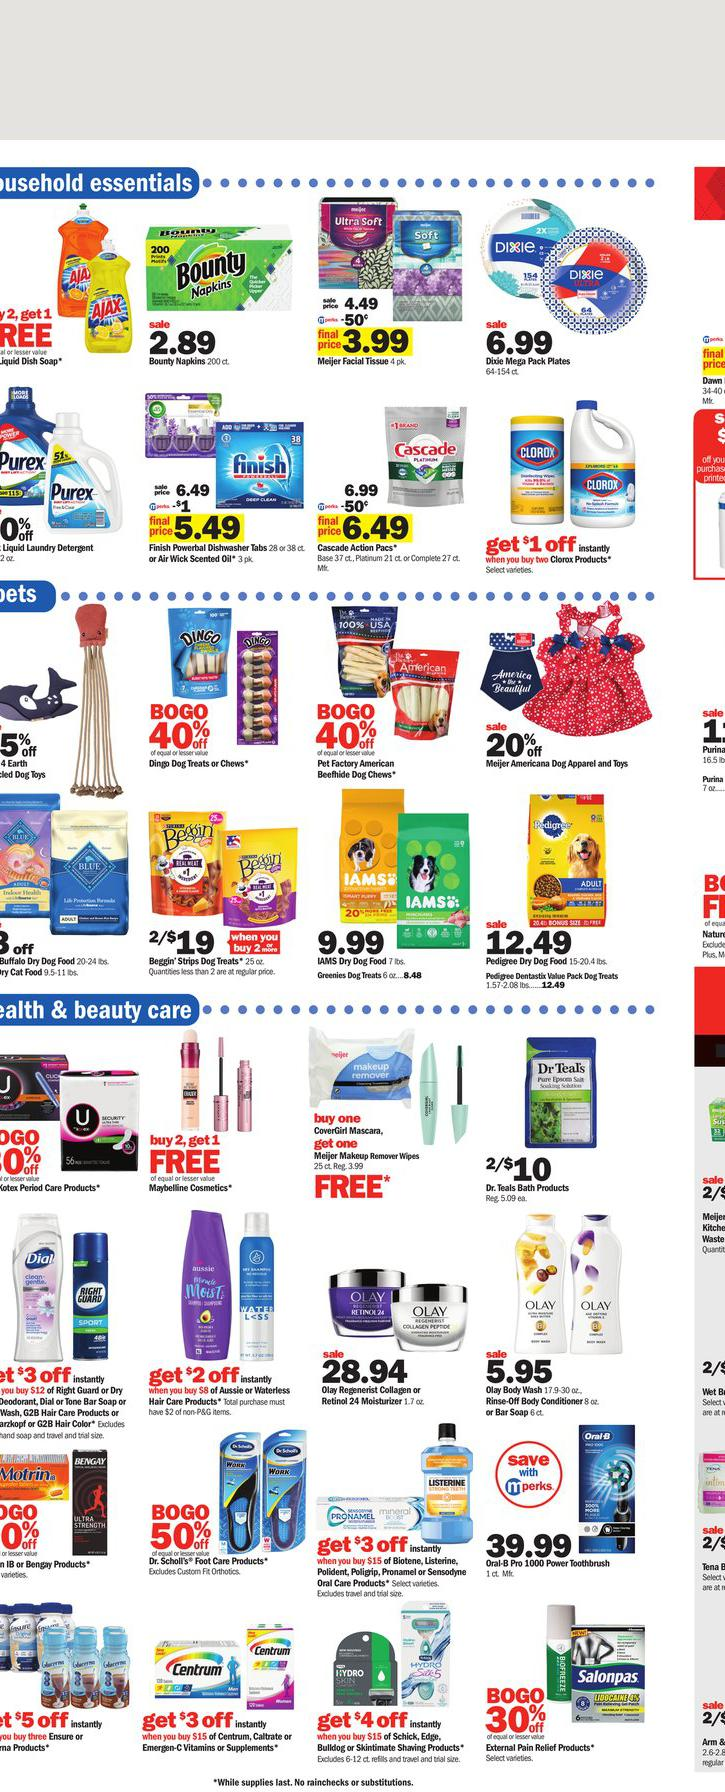 06.06.2021 Meijer ad 15. page